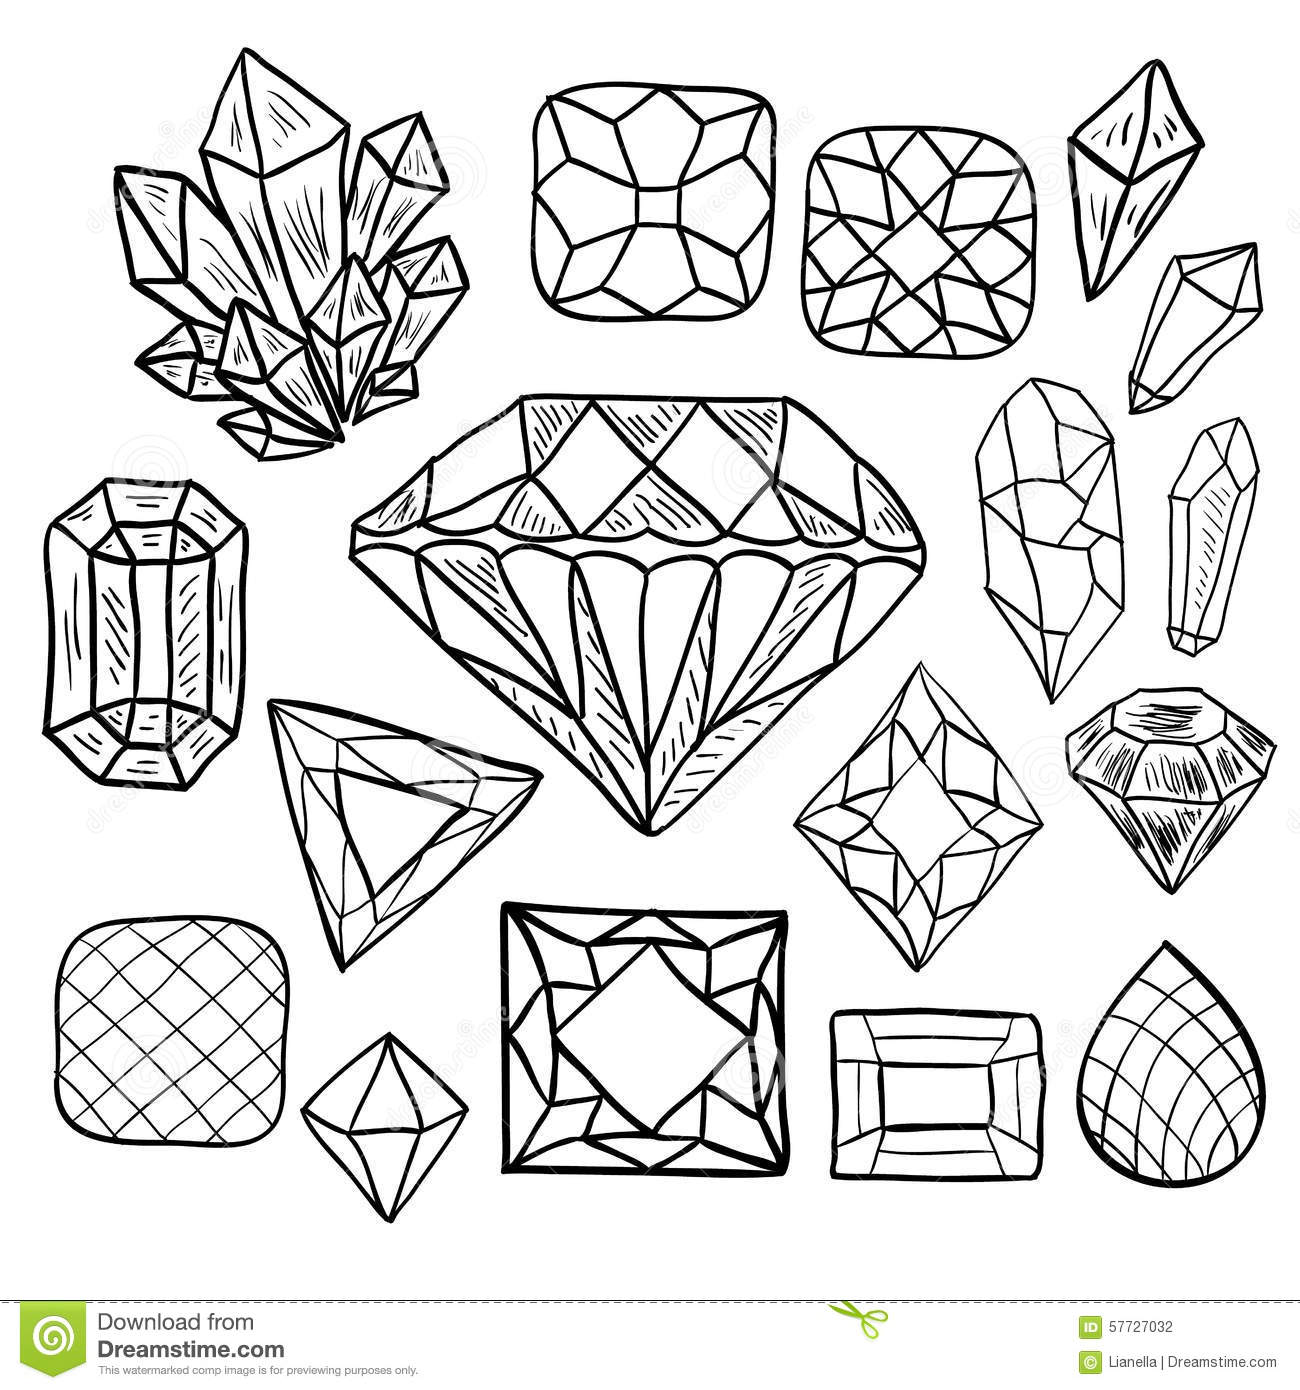 types of rocks coloring pages - photo#40